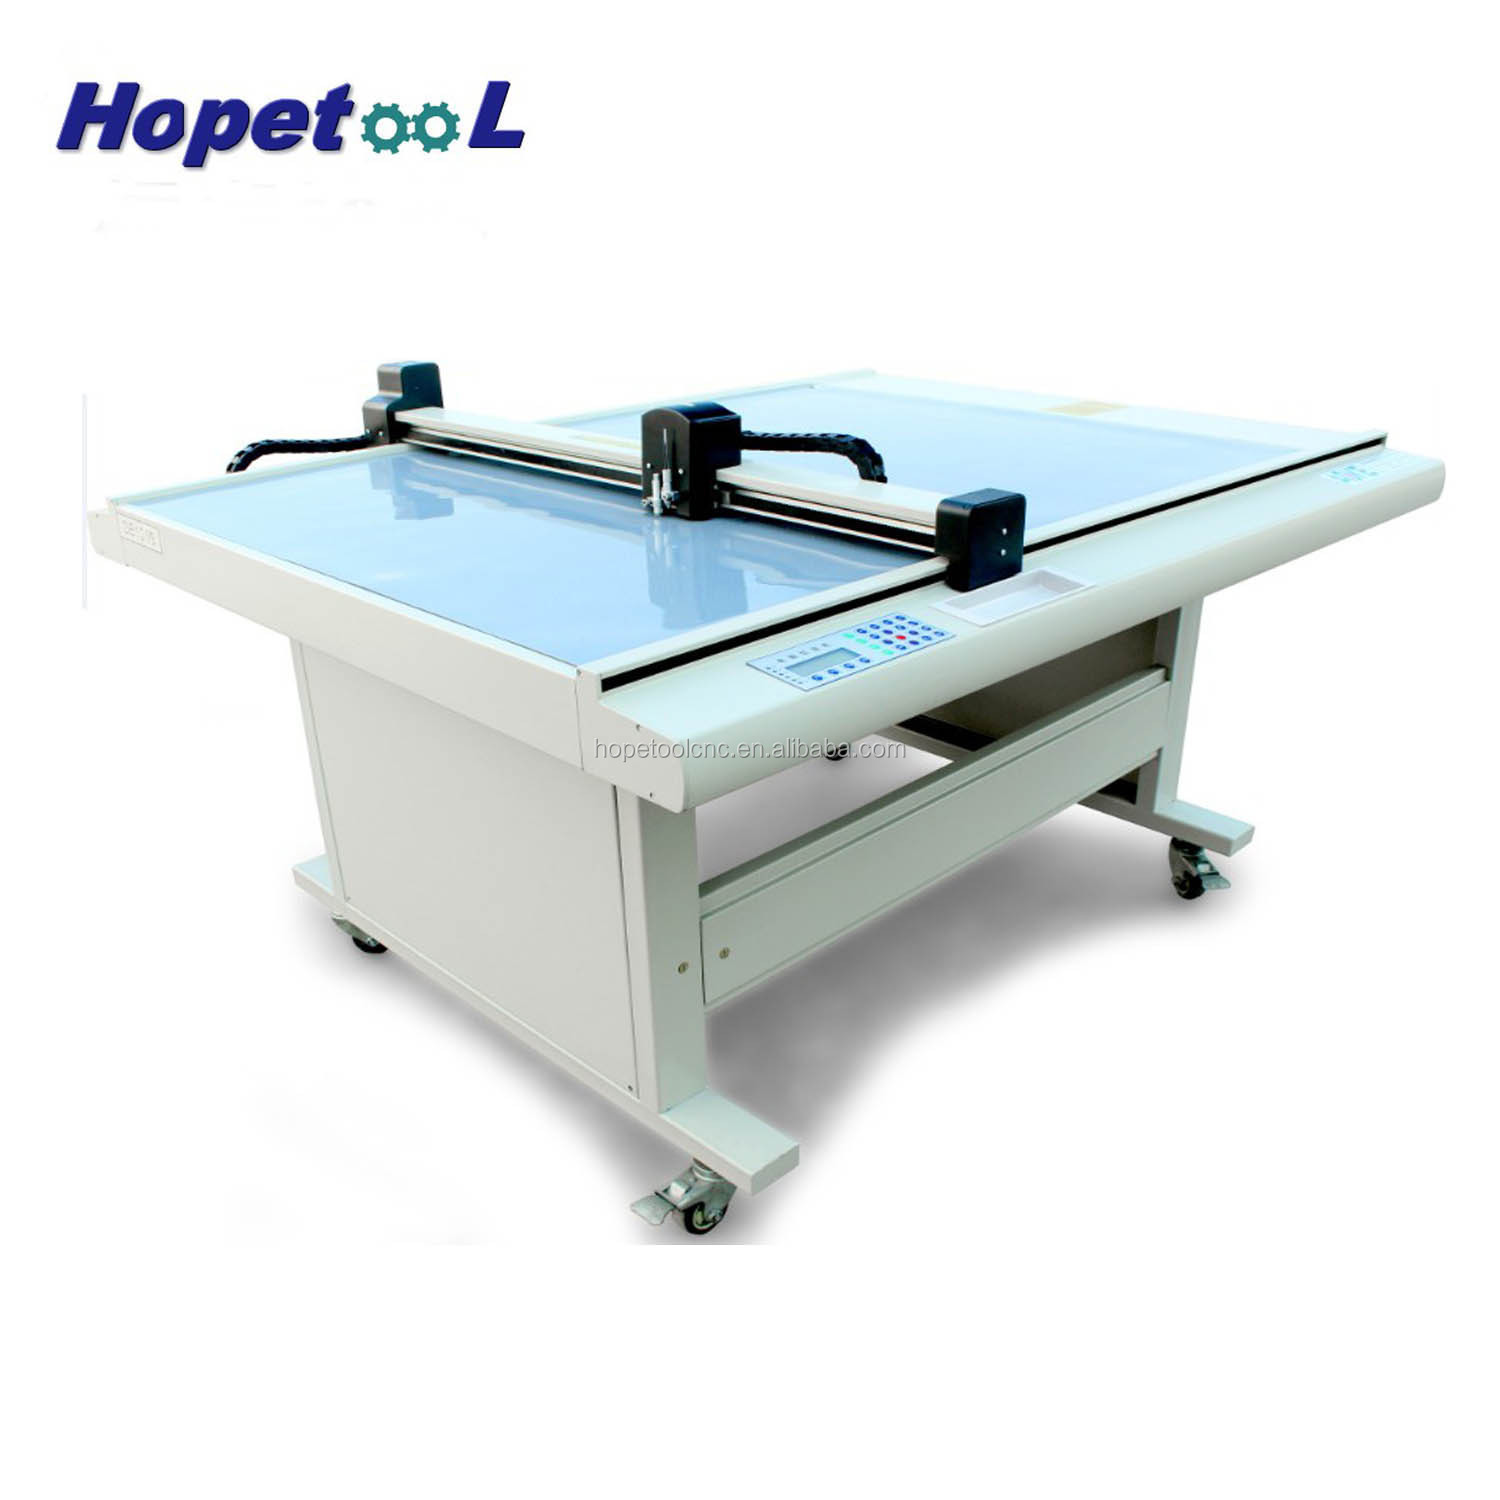 Fast speed accurate cnc flatbed plotter cutter